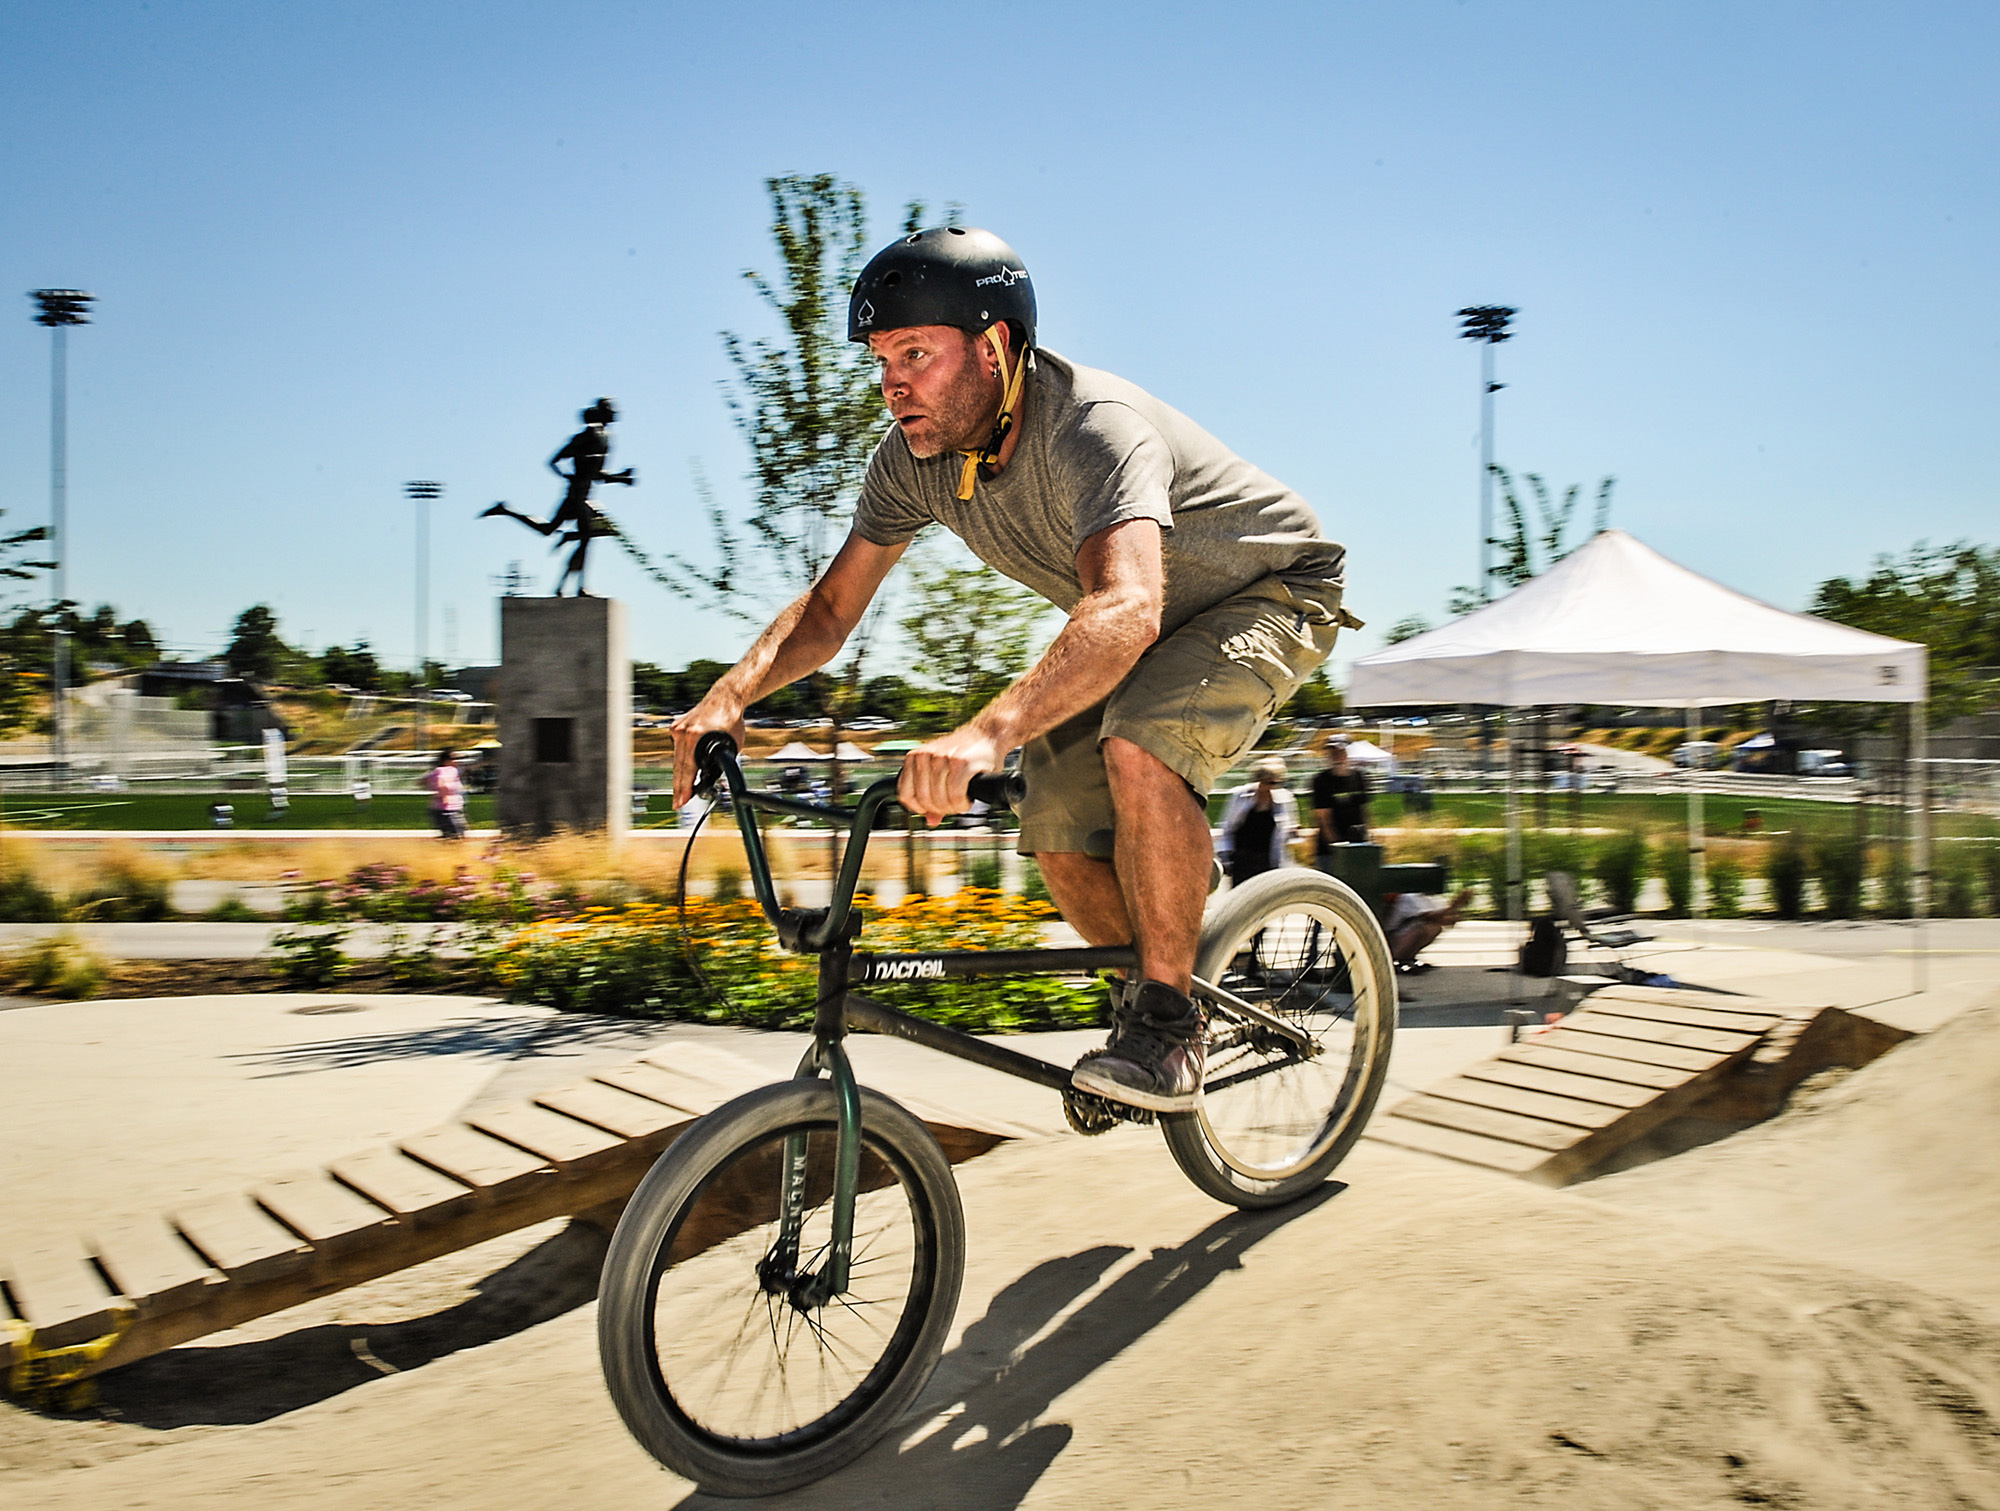 That's me charging the lower line back up to the beginning of the pumptrack on a very hot, dry and dusty day at the Grand Opening.